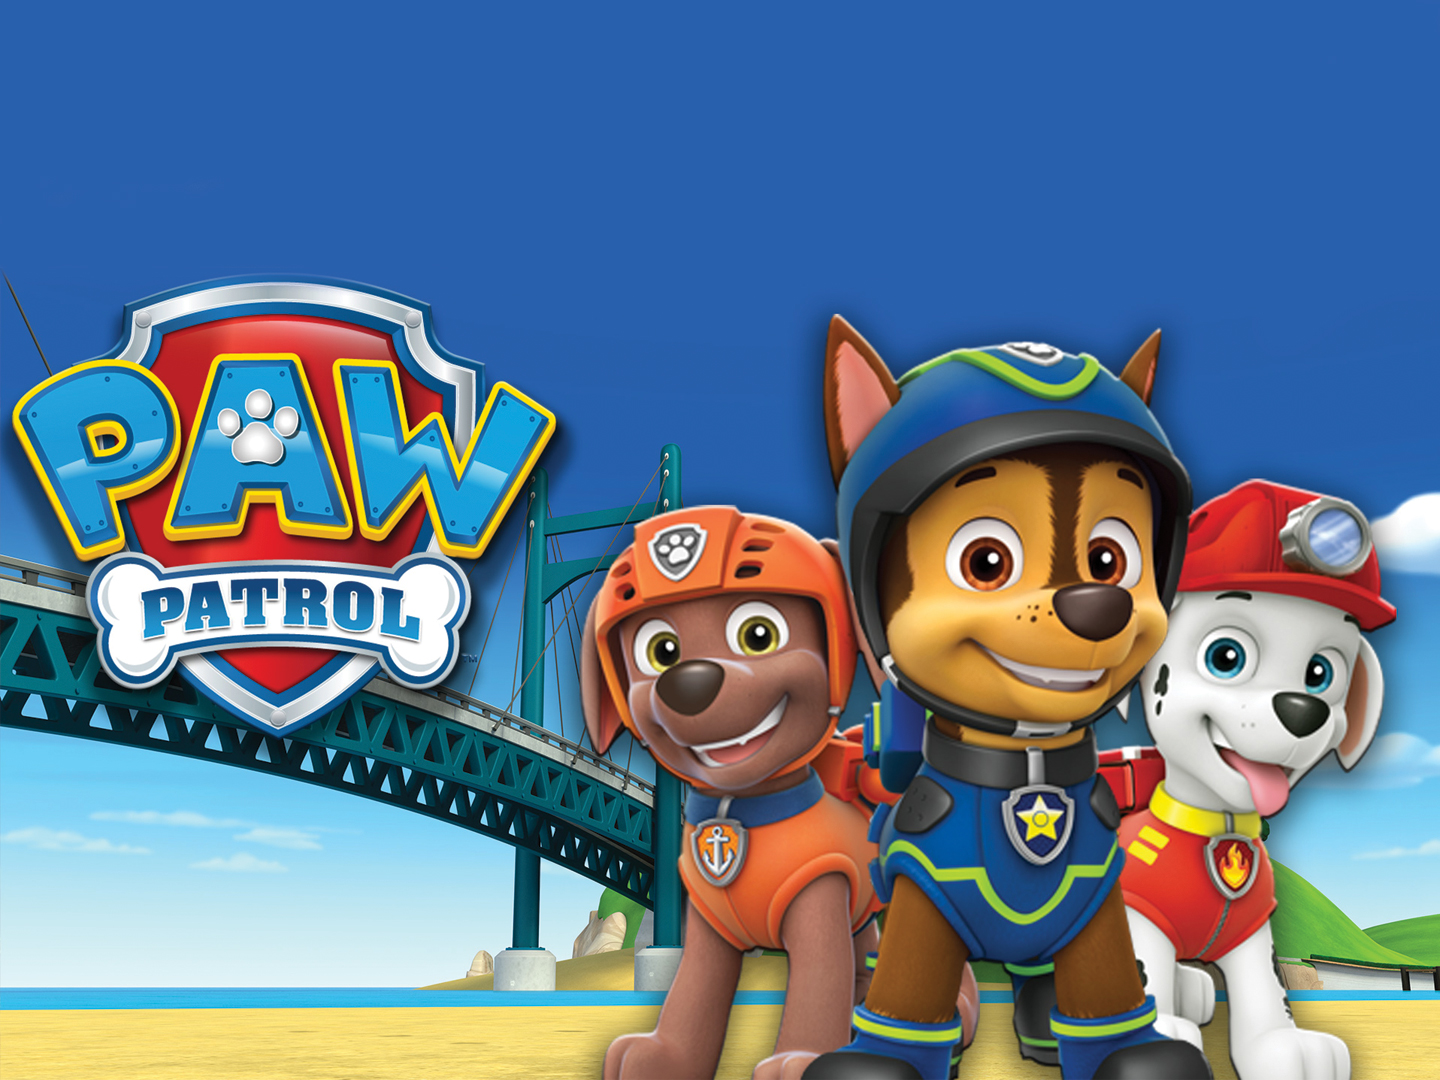 Watch Paw Patrol Online | Season 1 - 3 on Lightbox